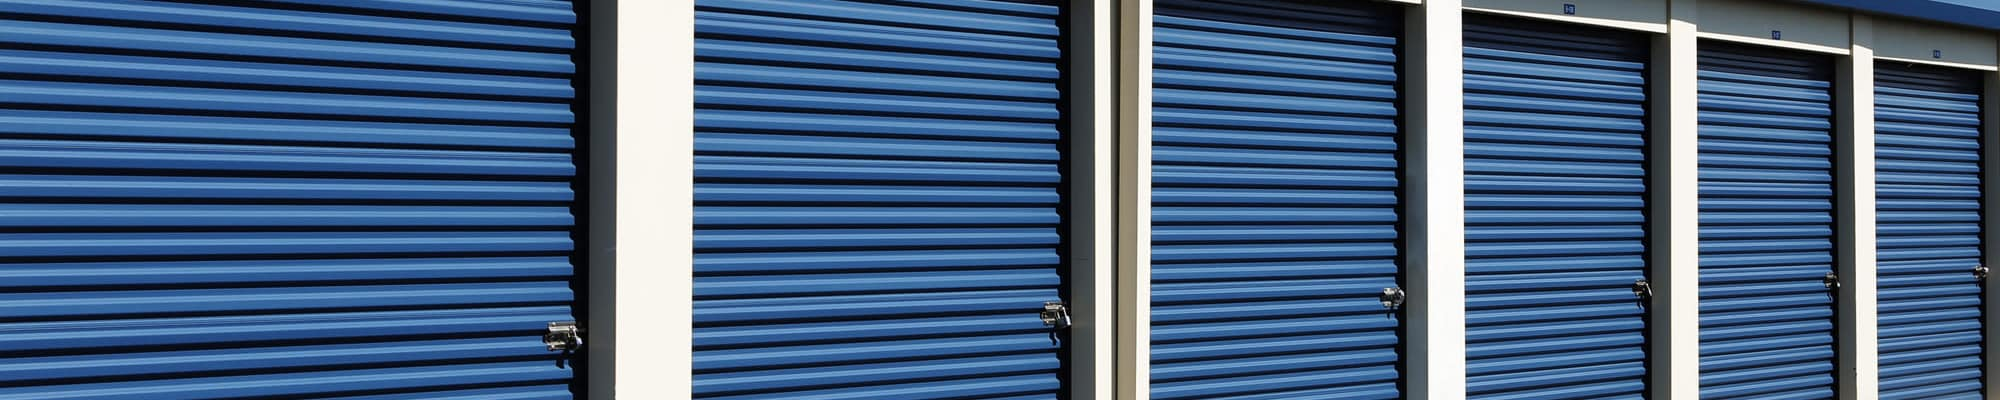 Business storage at Midgard Self Storage in Sheffield, Alabama